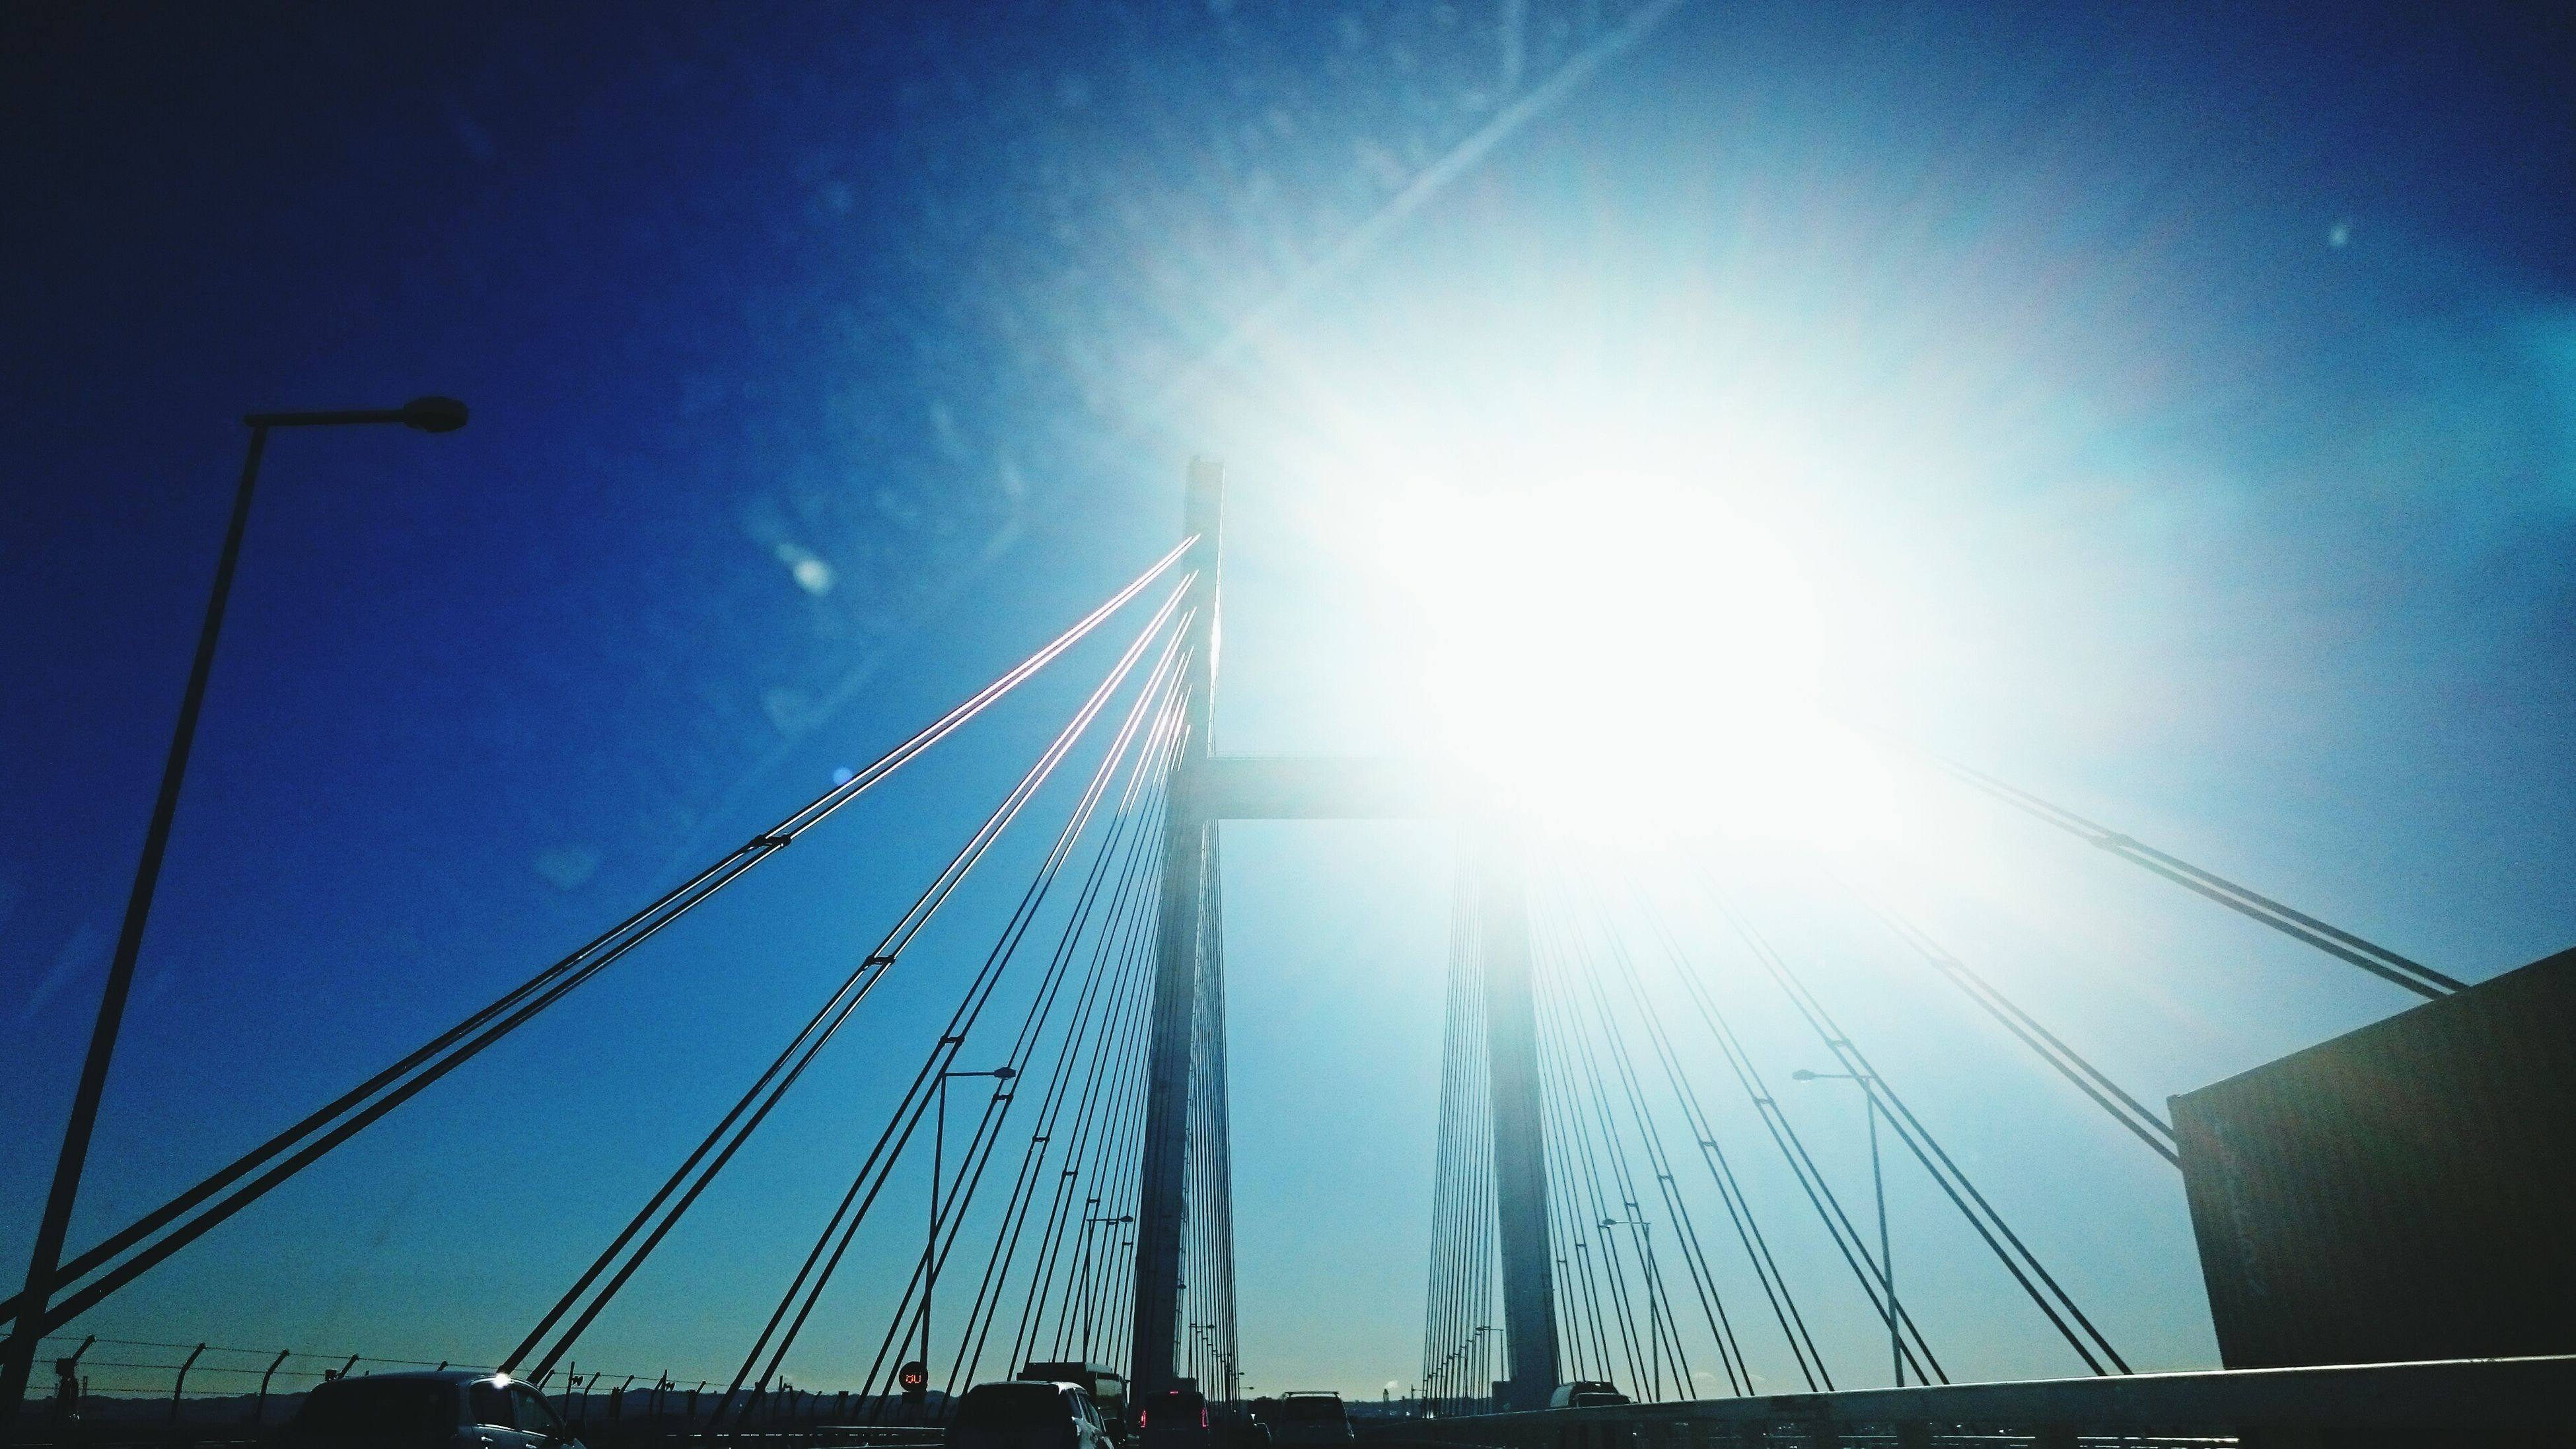 built structure, architecture, sunbeam, sky, low angle view, lens flare, sunlight, sun, connection, blue, building exterior, transportation, suspension bridge, bridge - man made structure, no people, outdoors, city, day